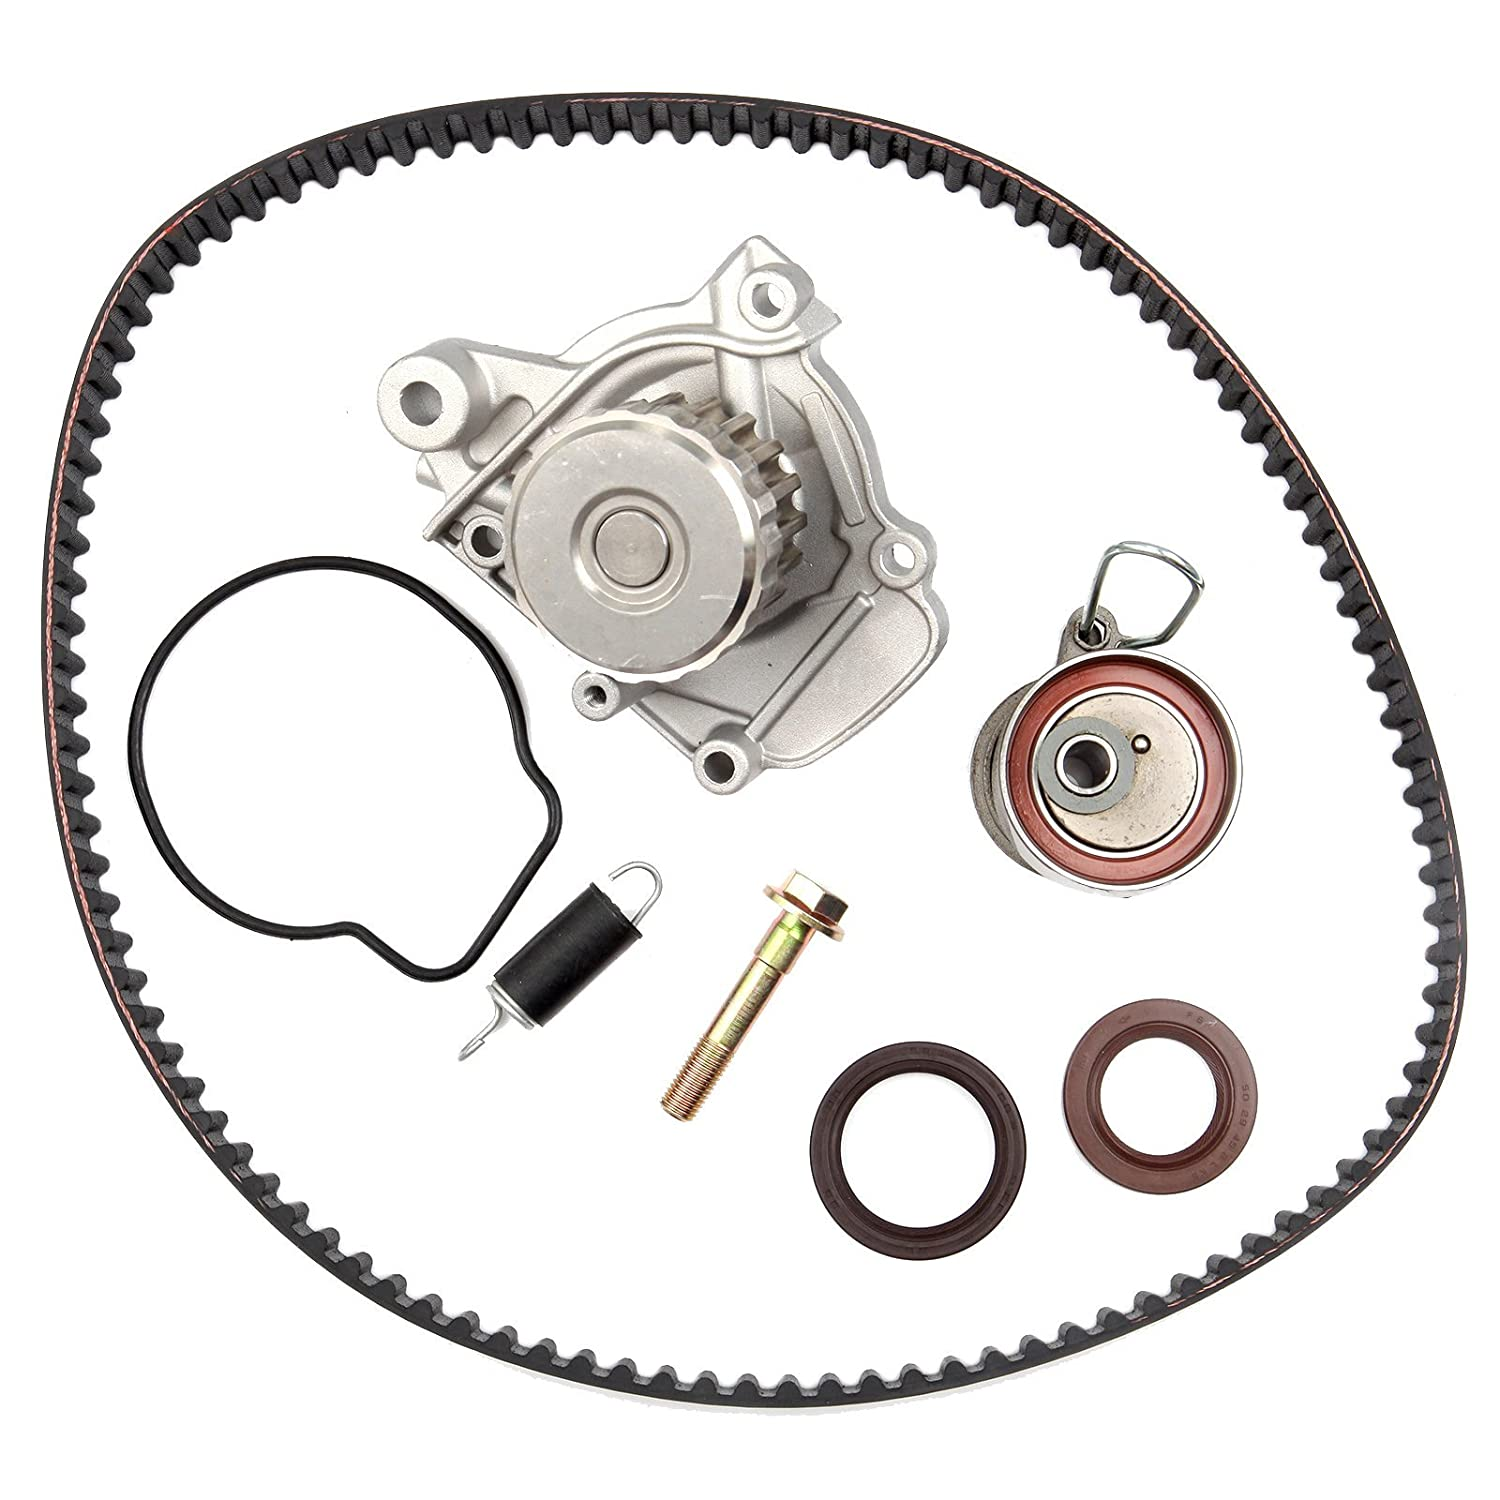 ECCPP Engine Timing Belt Water Pump Kit for 2001-2005 Honda Civic GX DX LX VP EX HX 1.7L D17A1 D17A2 D17A6 D17A7 L4 SOHC 16V BHBU0503A3889